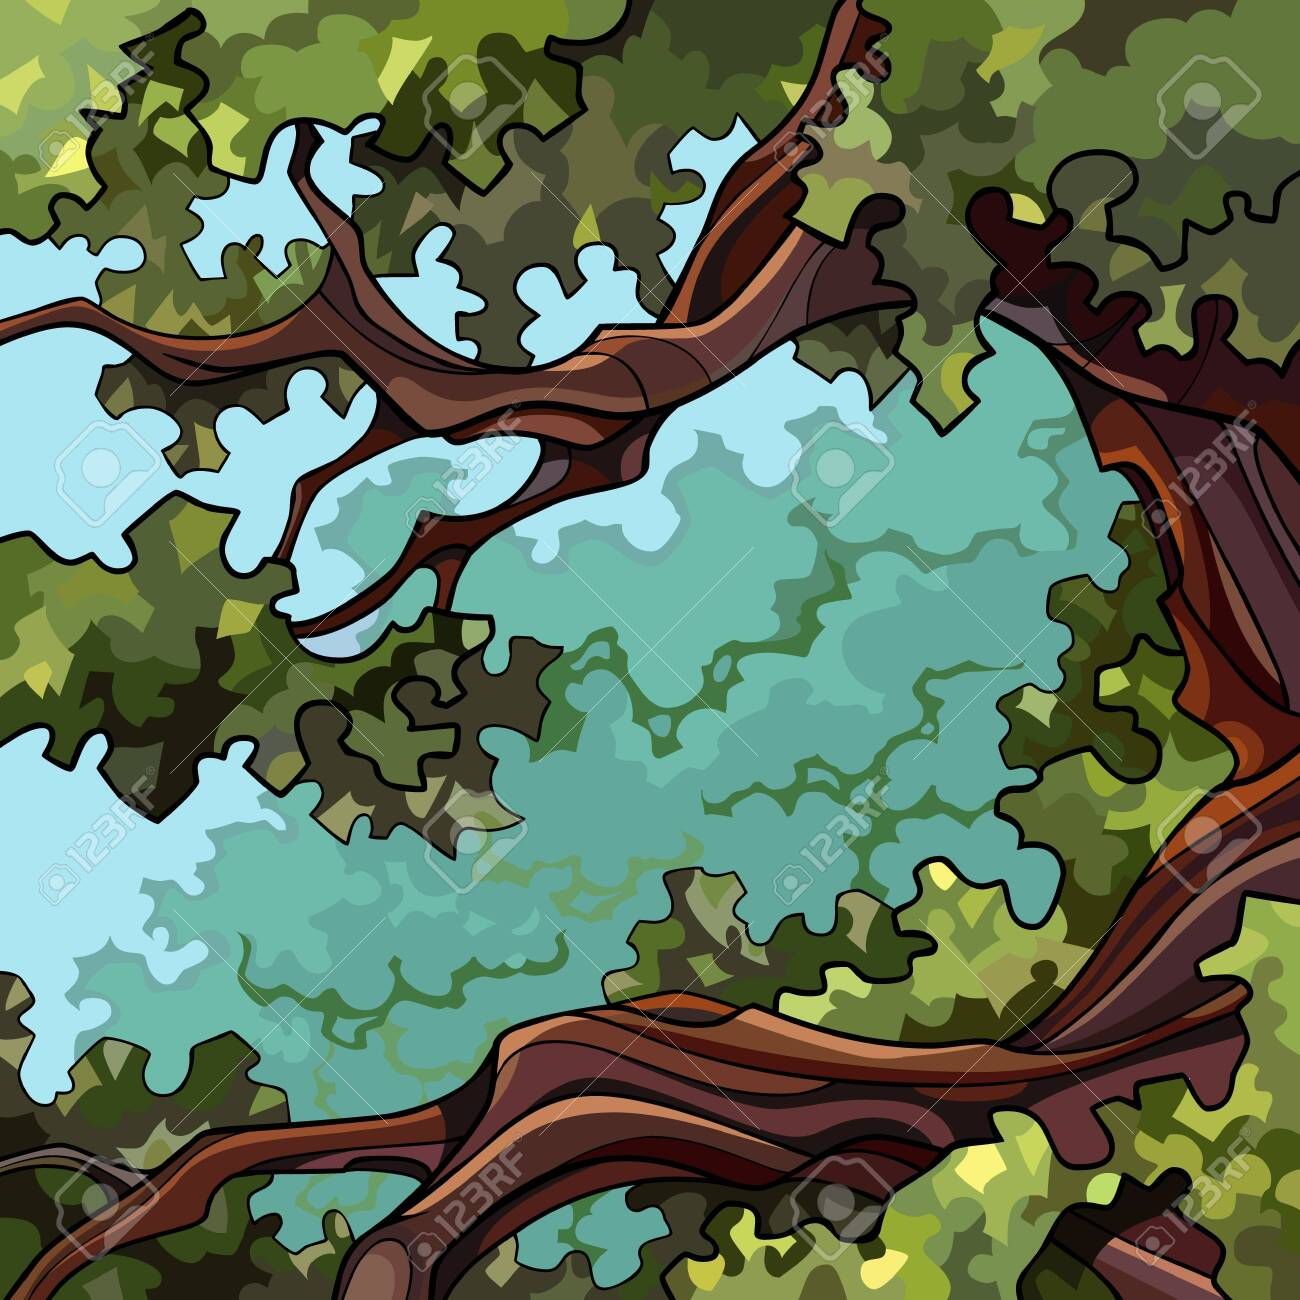 square summer green cartoon background on tall tree branches - 147917726